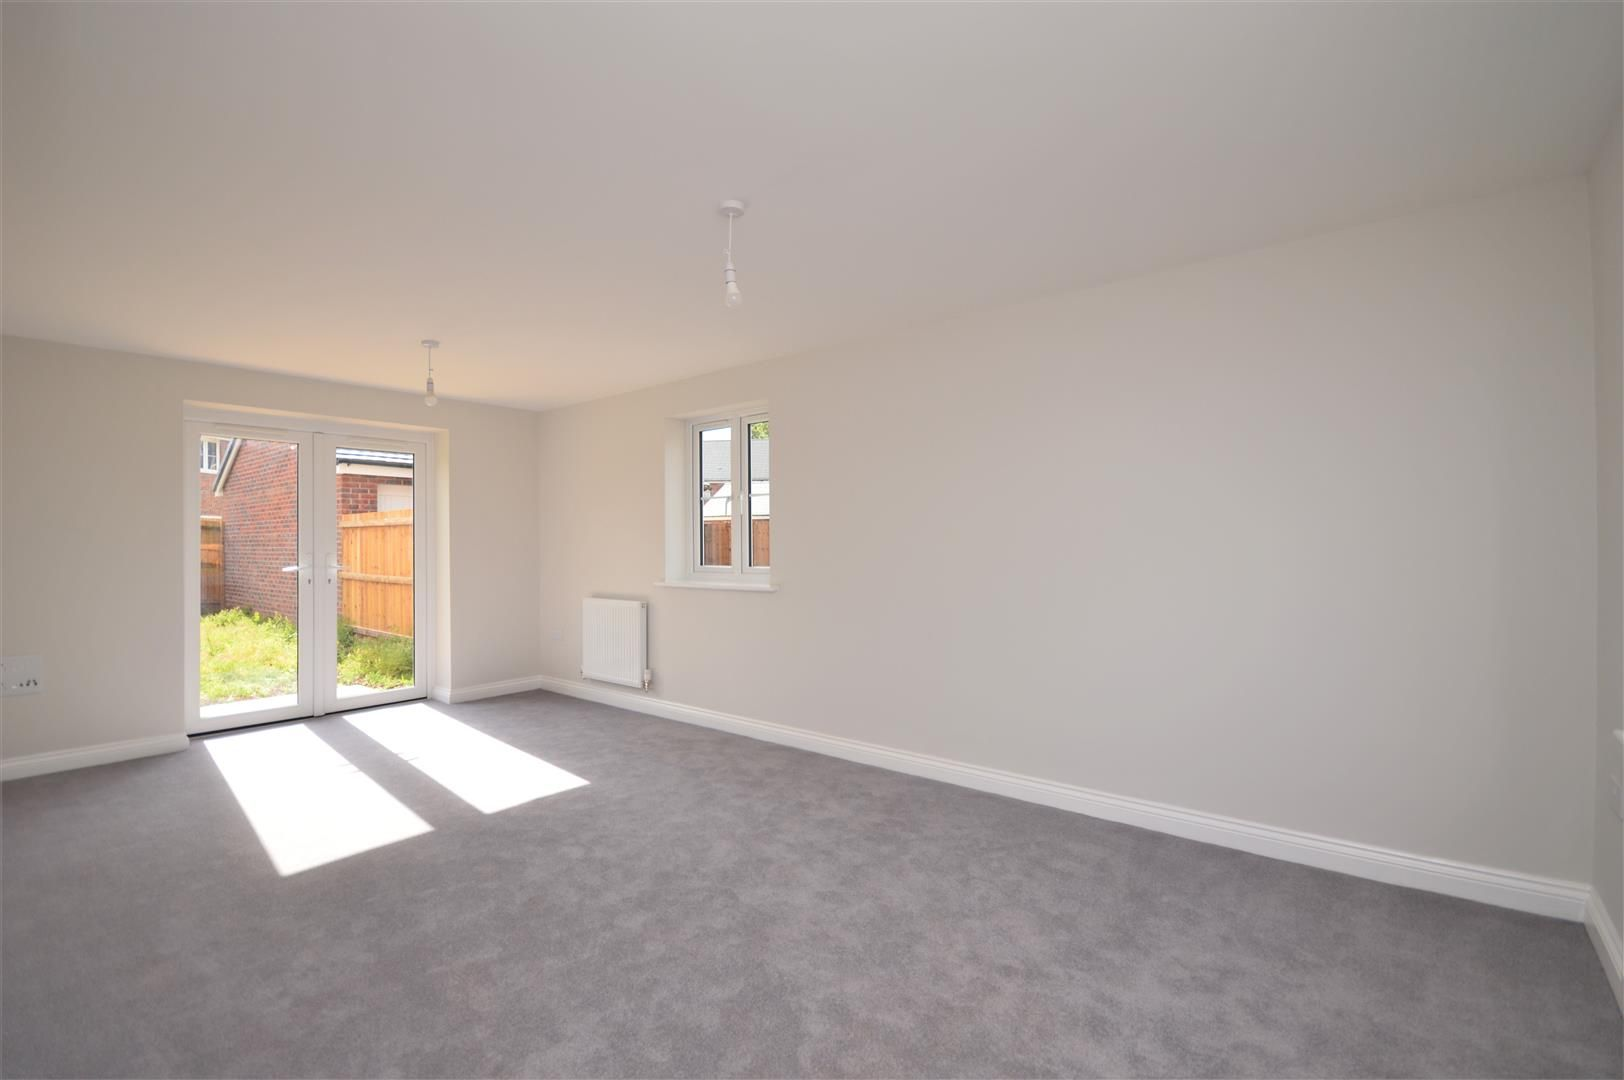 4 bed detached for sale in Kingstone 4